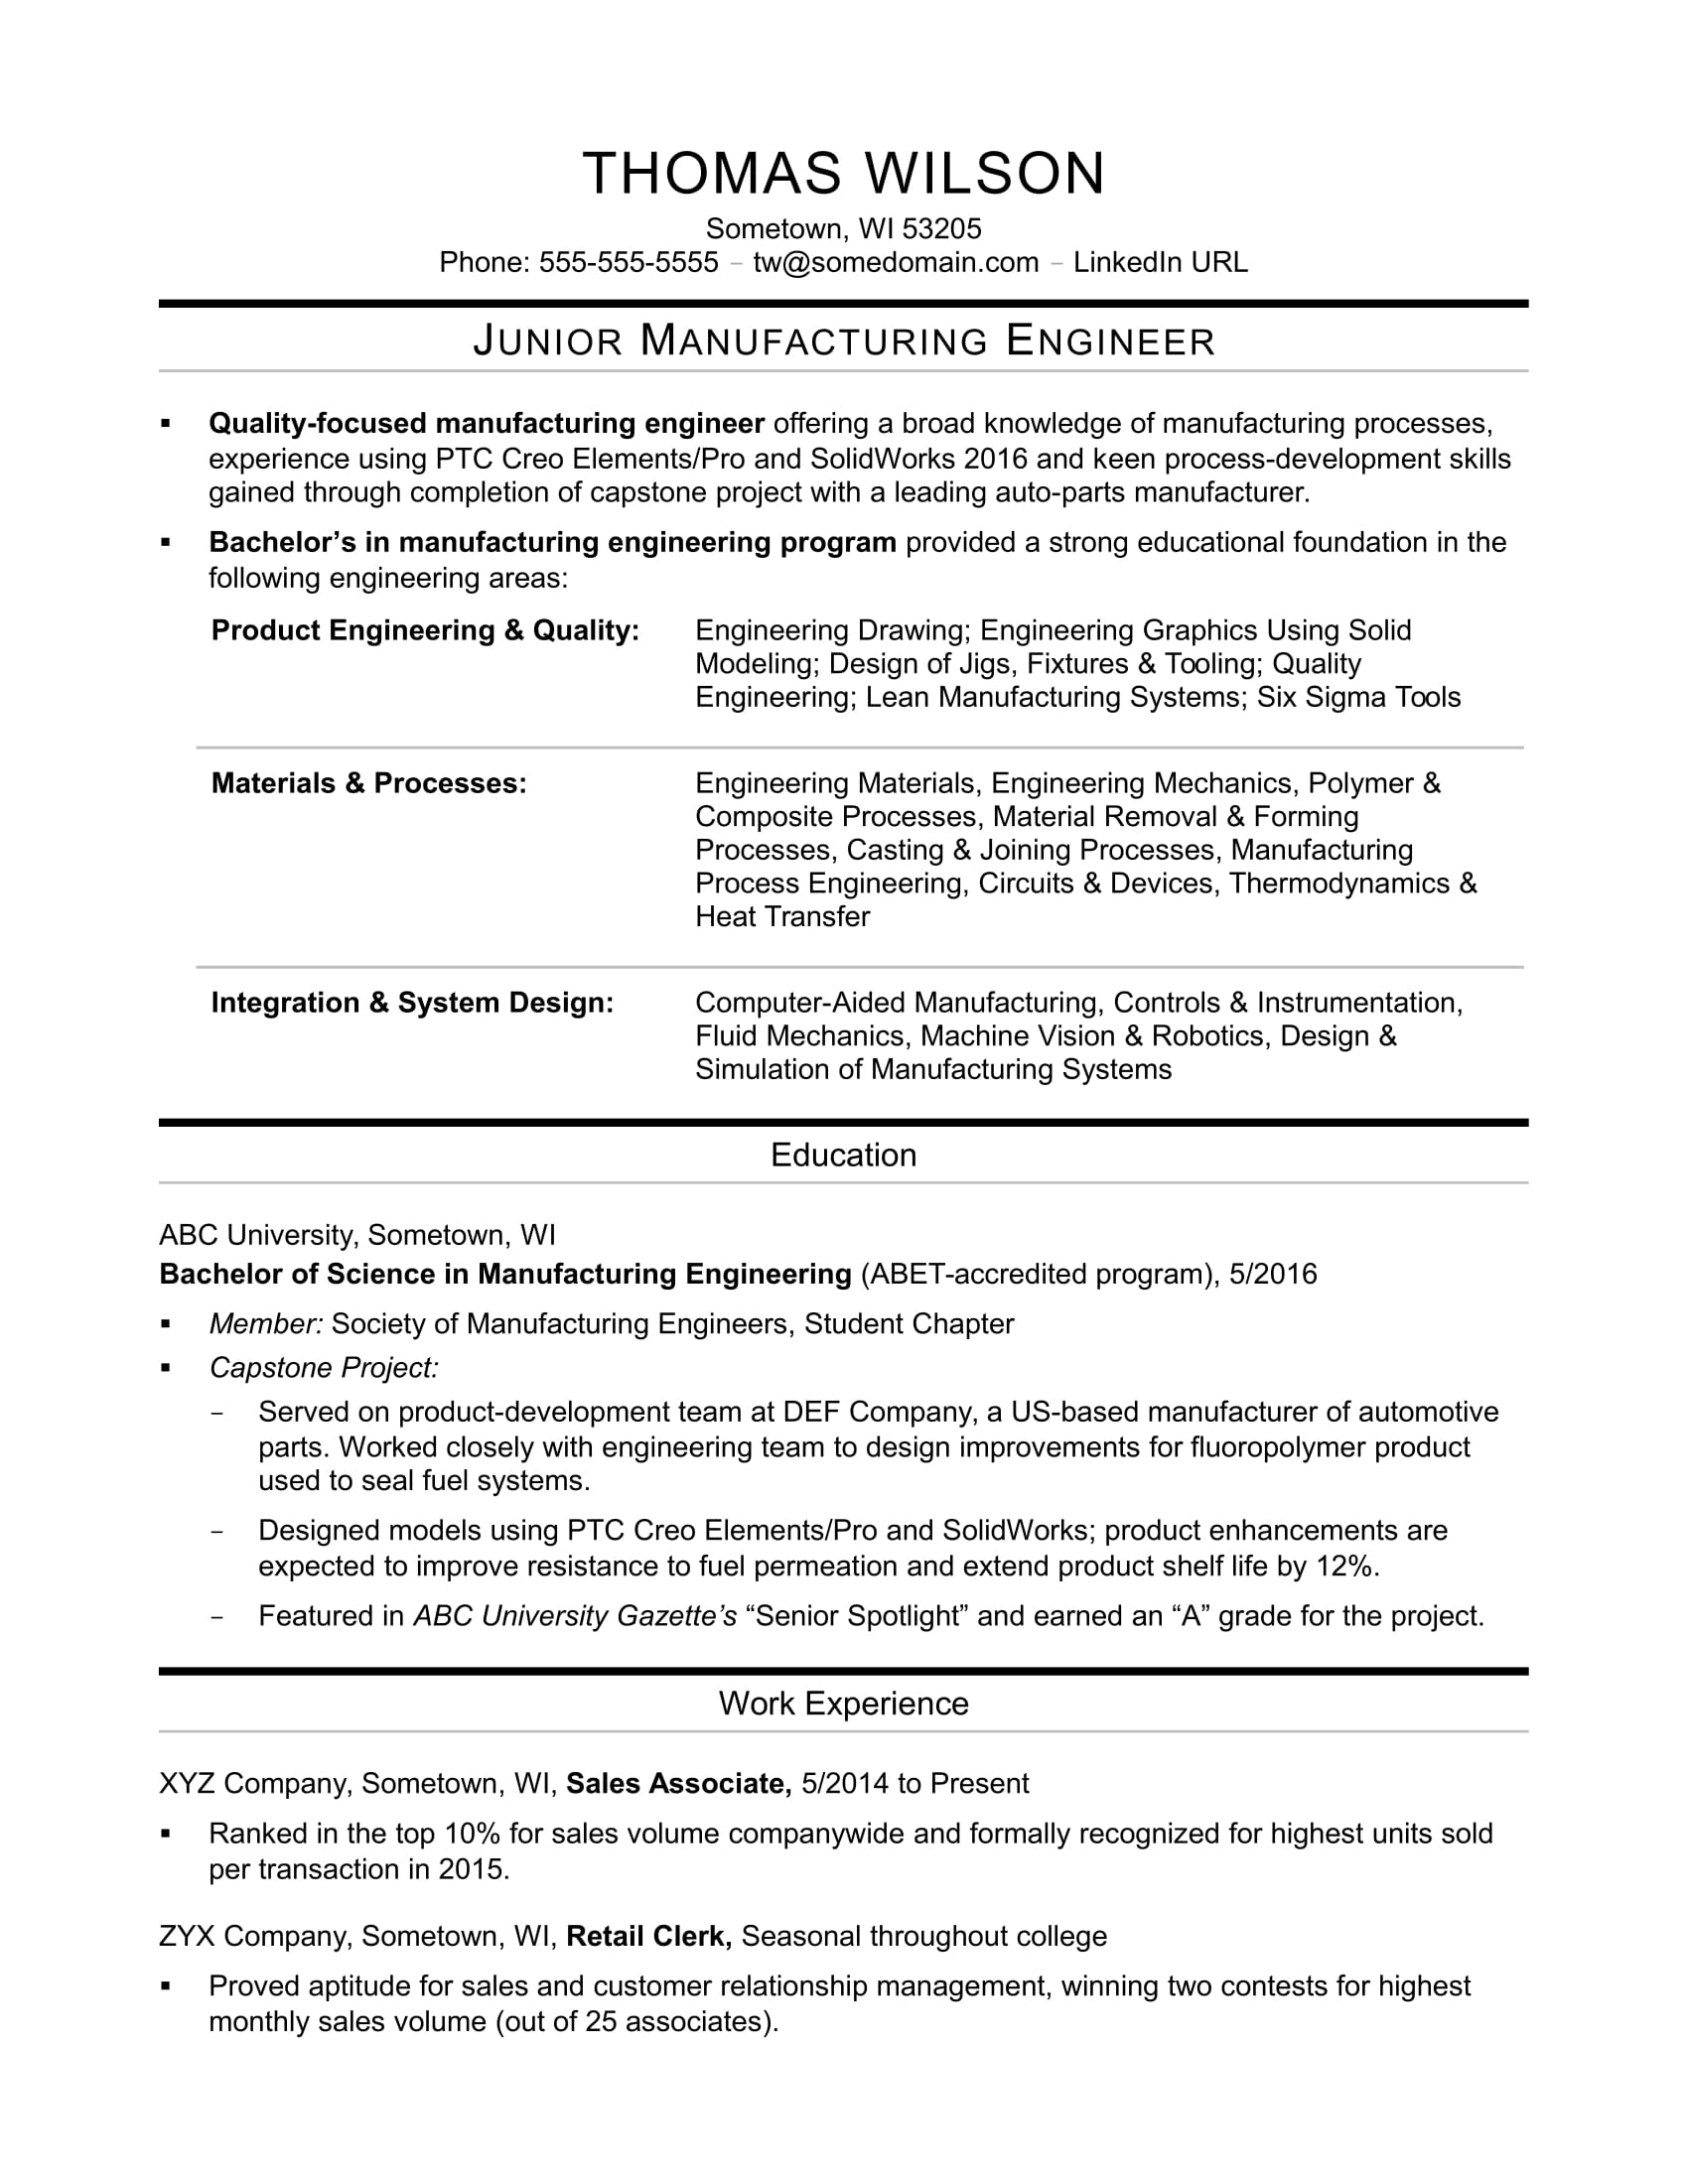 sample resume for an entry level manufacturing engineer - Manufacturing Engineer Sample Resume